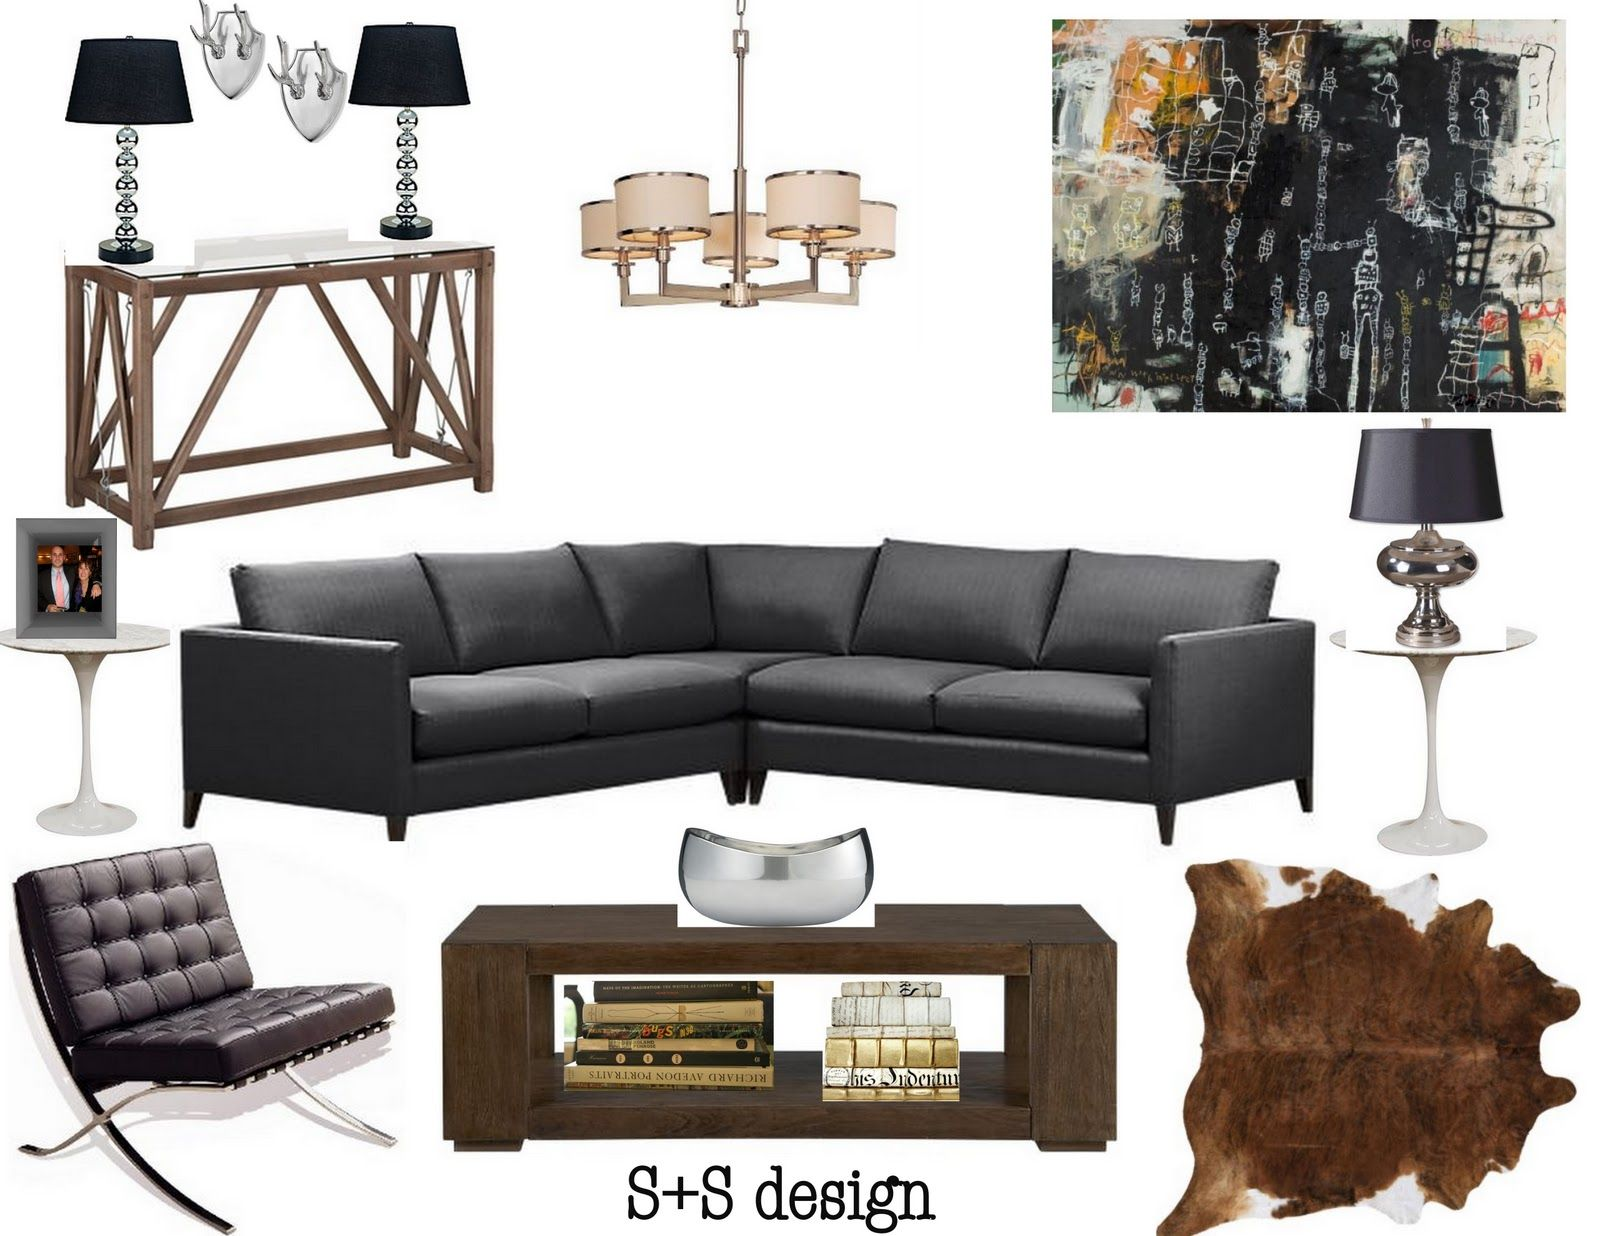 glamorous bachelor pad living room ideas | sadie + stella: S+S Design: Bachelor Pad in 2019 ...